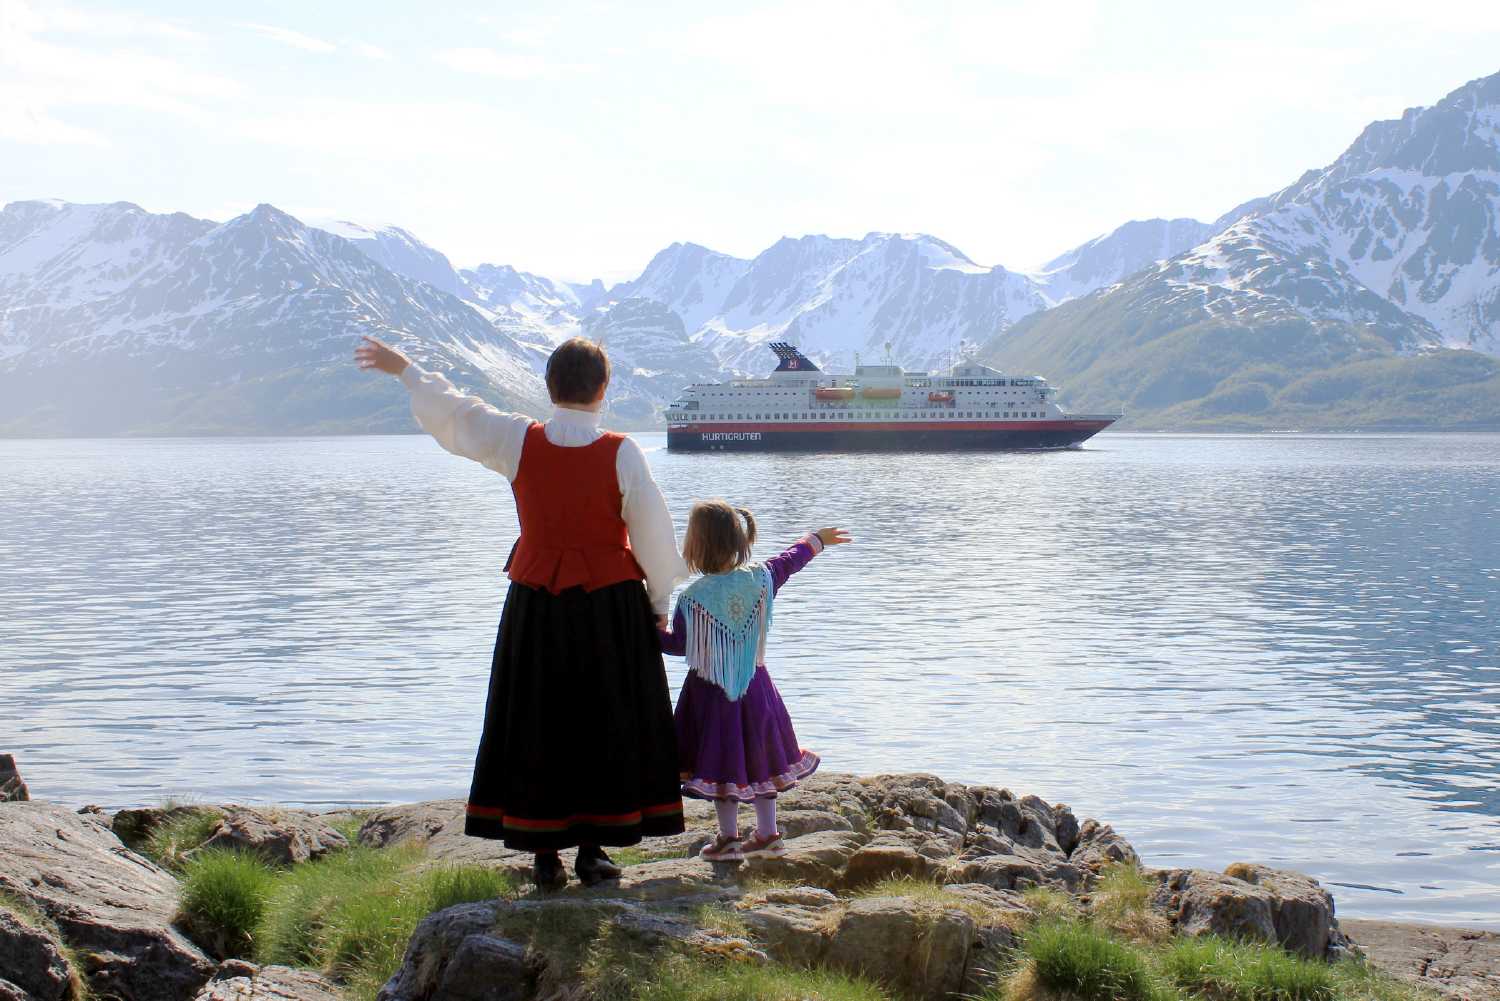 Cruise around Scandinavia onboard a Hurtigruten ship